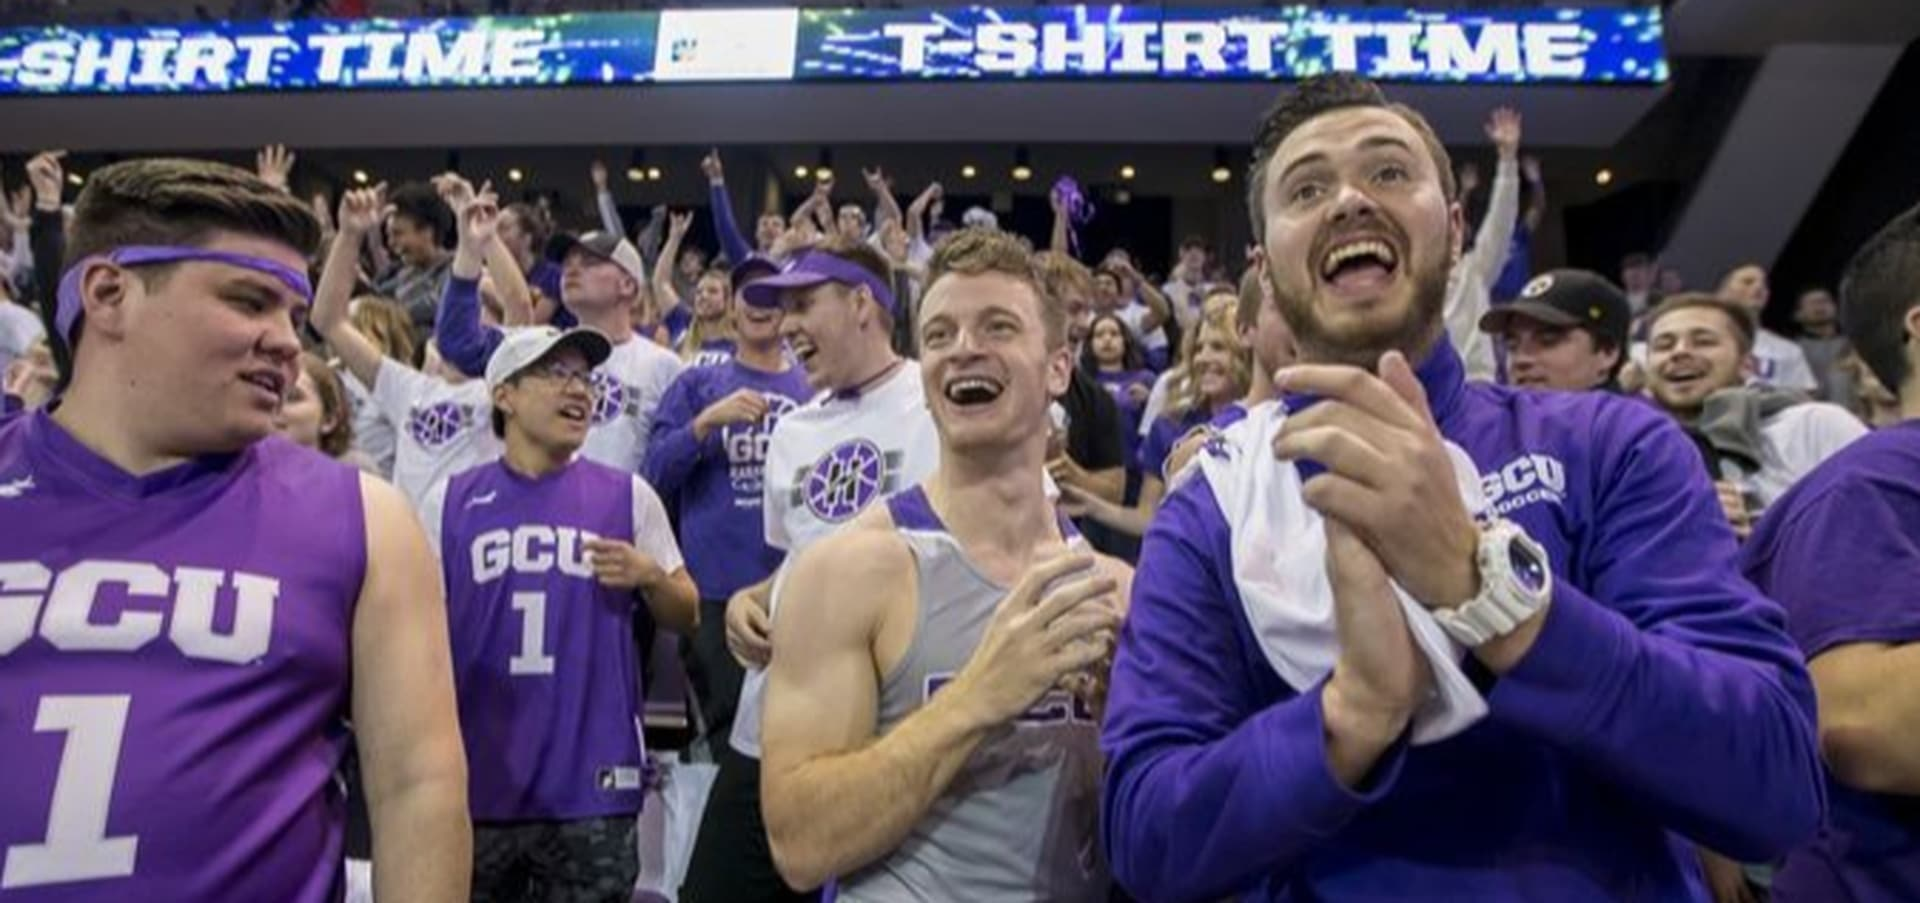 Fans cheer at the Grand Canyon University basketball team at the WAC Conference championship game.